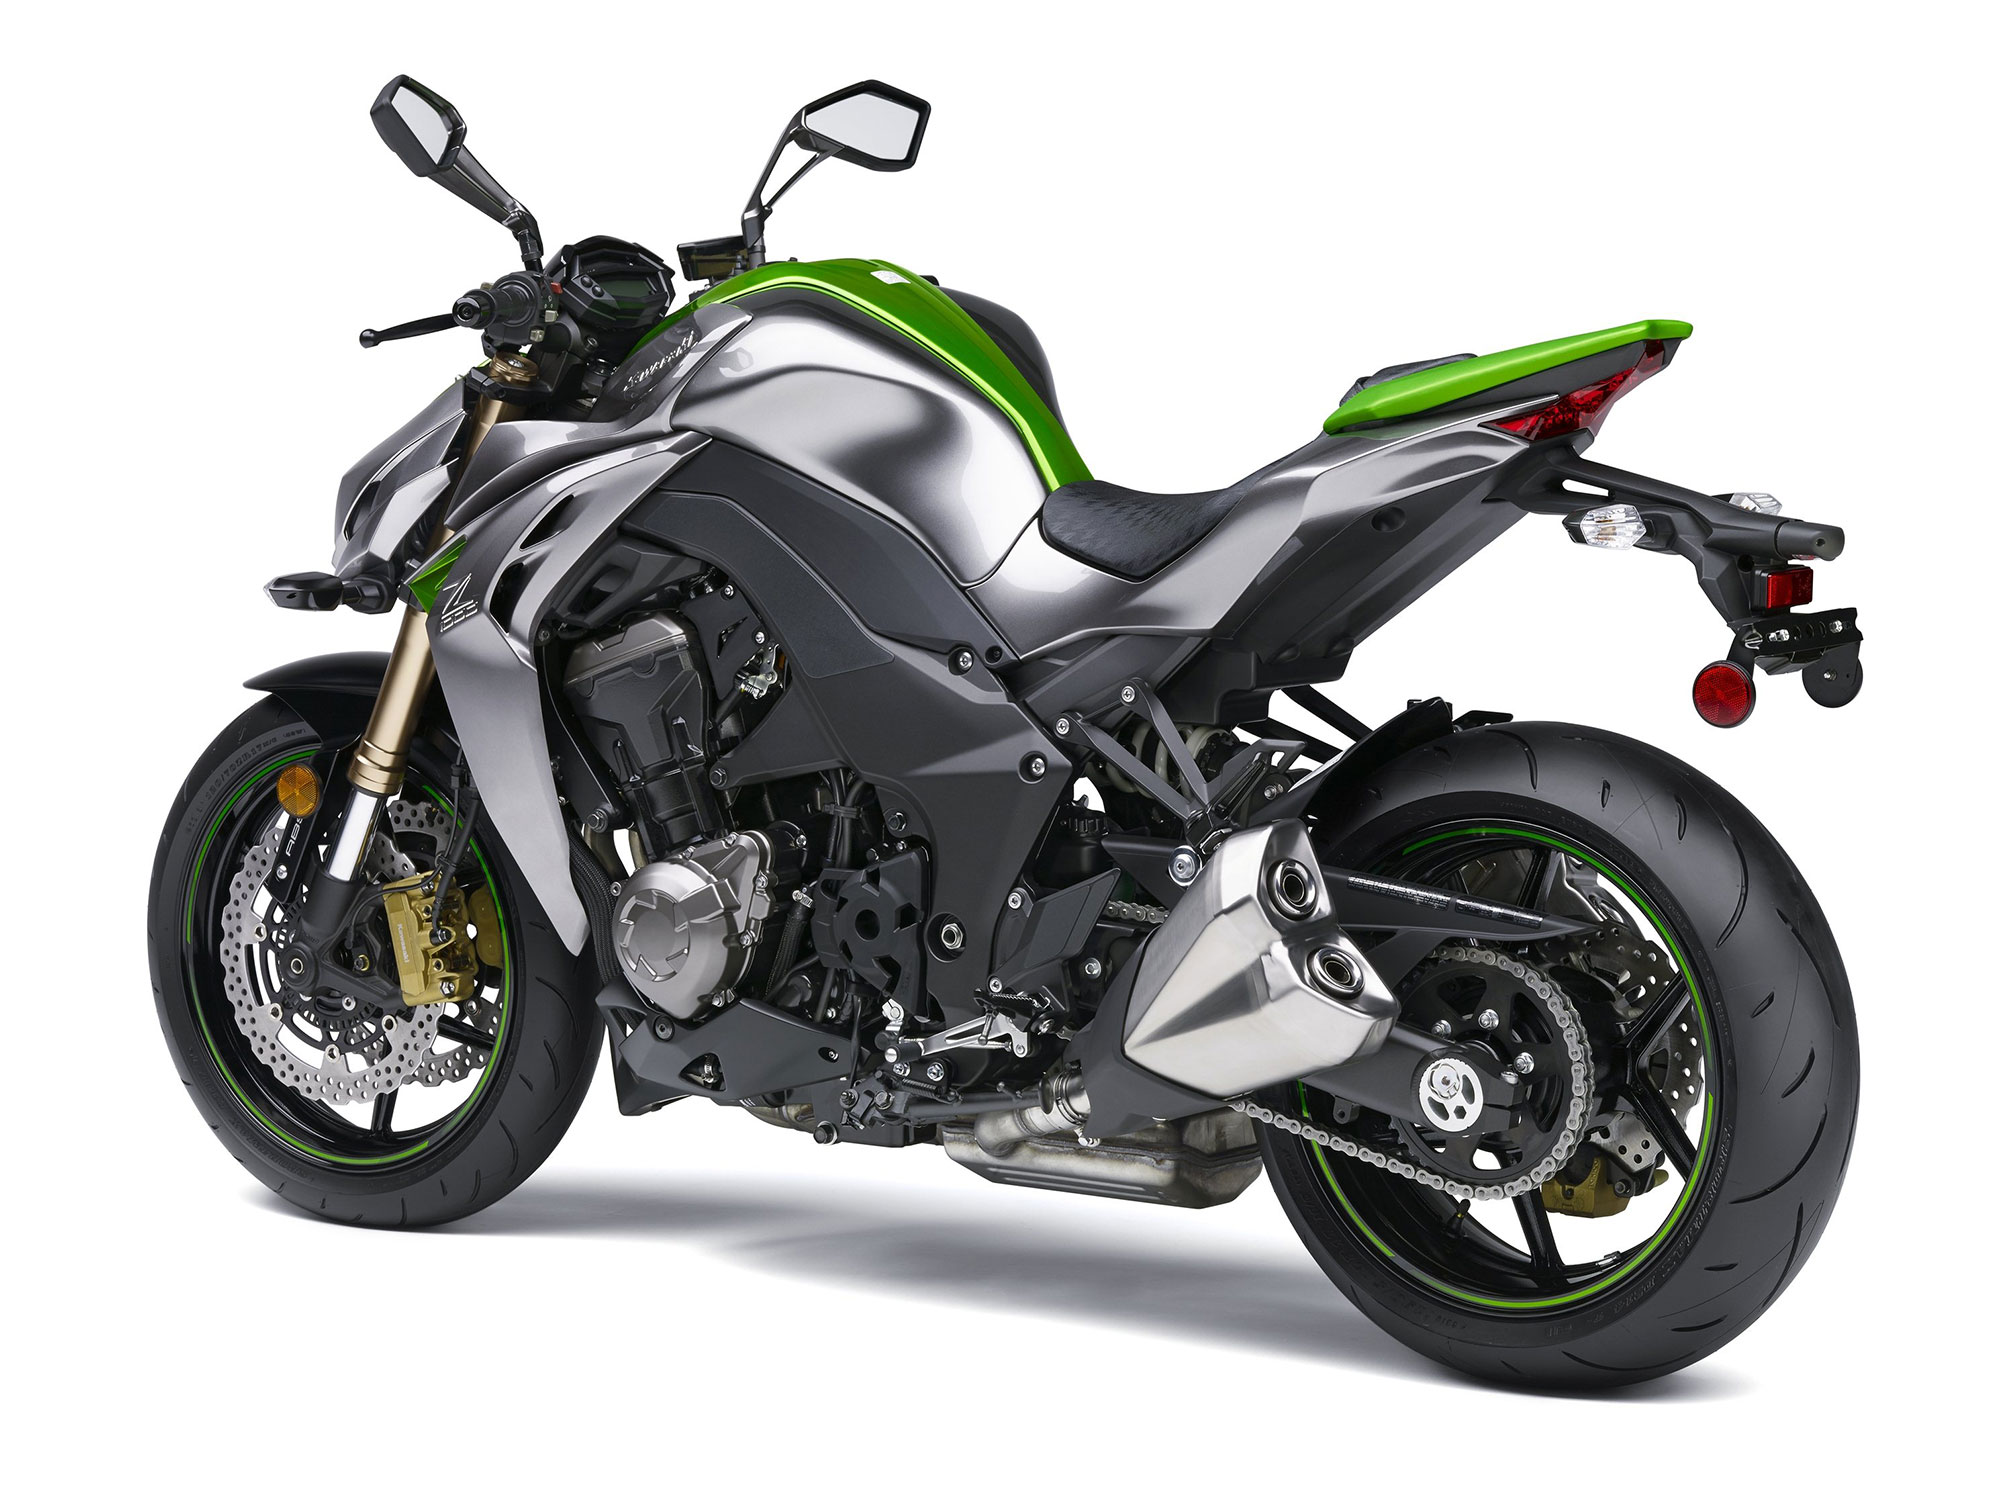 kawasaki z1000 abs specs 2013 2014 autoevolution. Black Bedroom Furniture Sets. Home Design Ideas